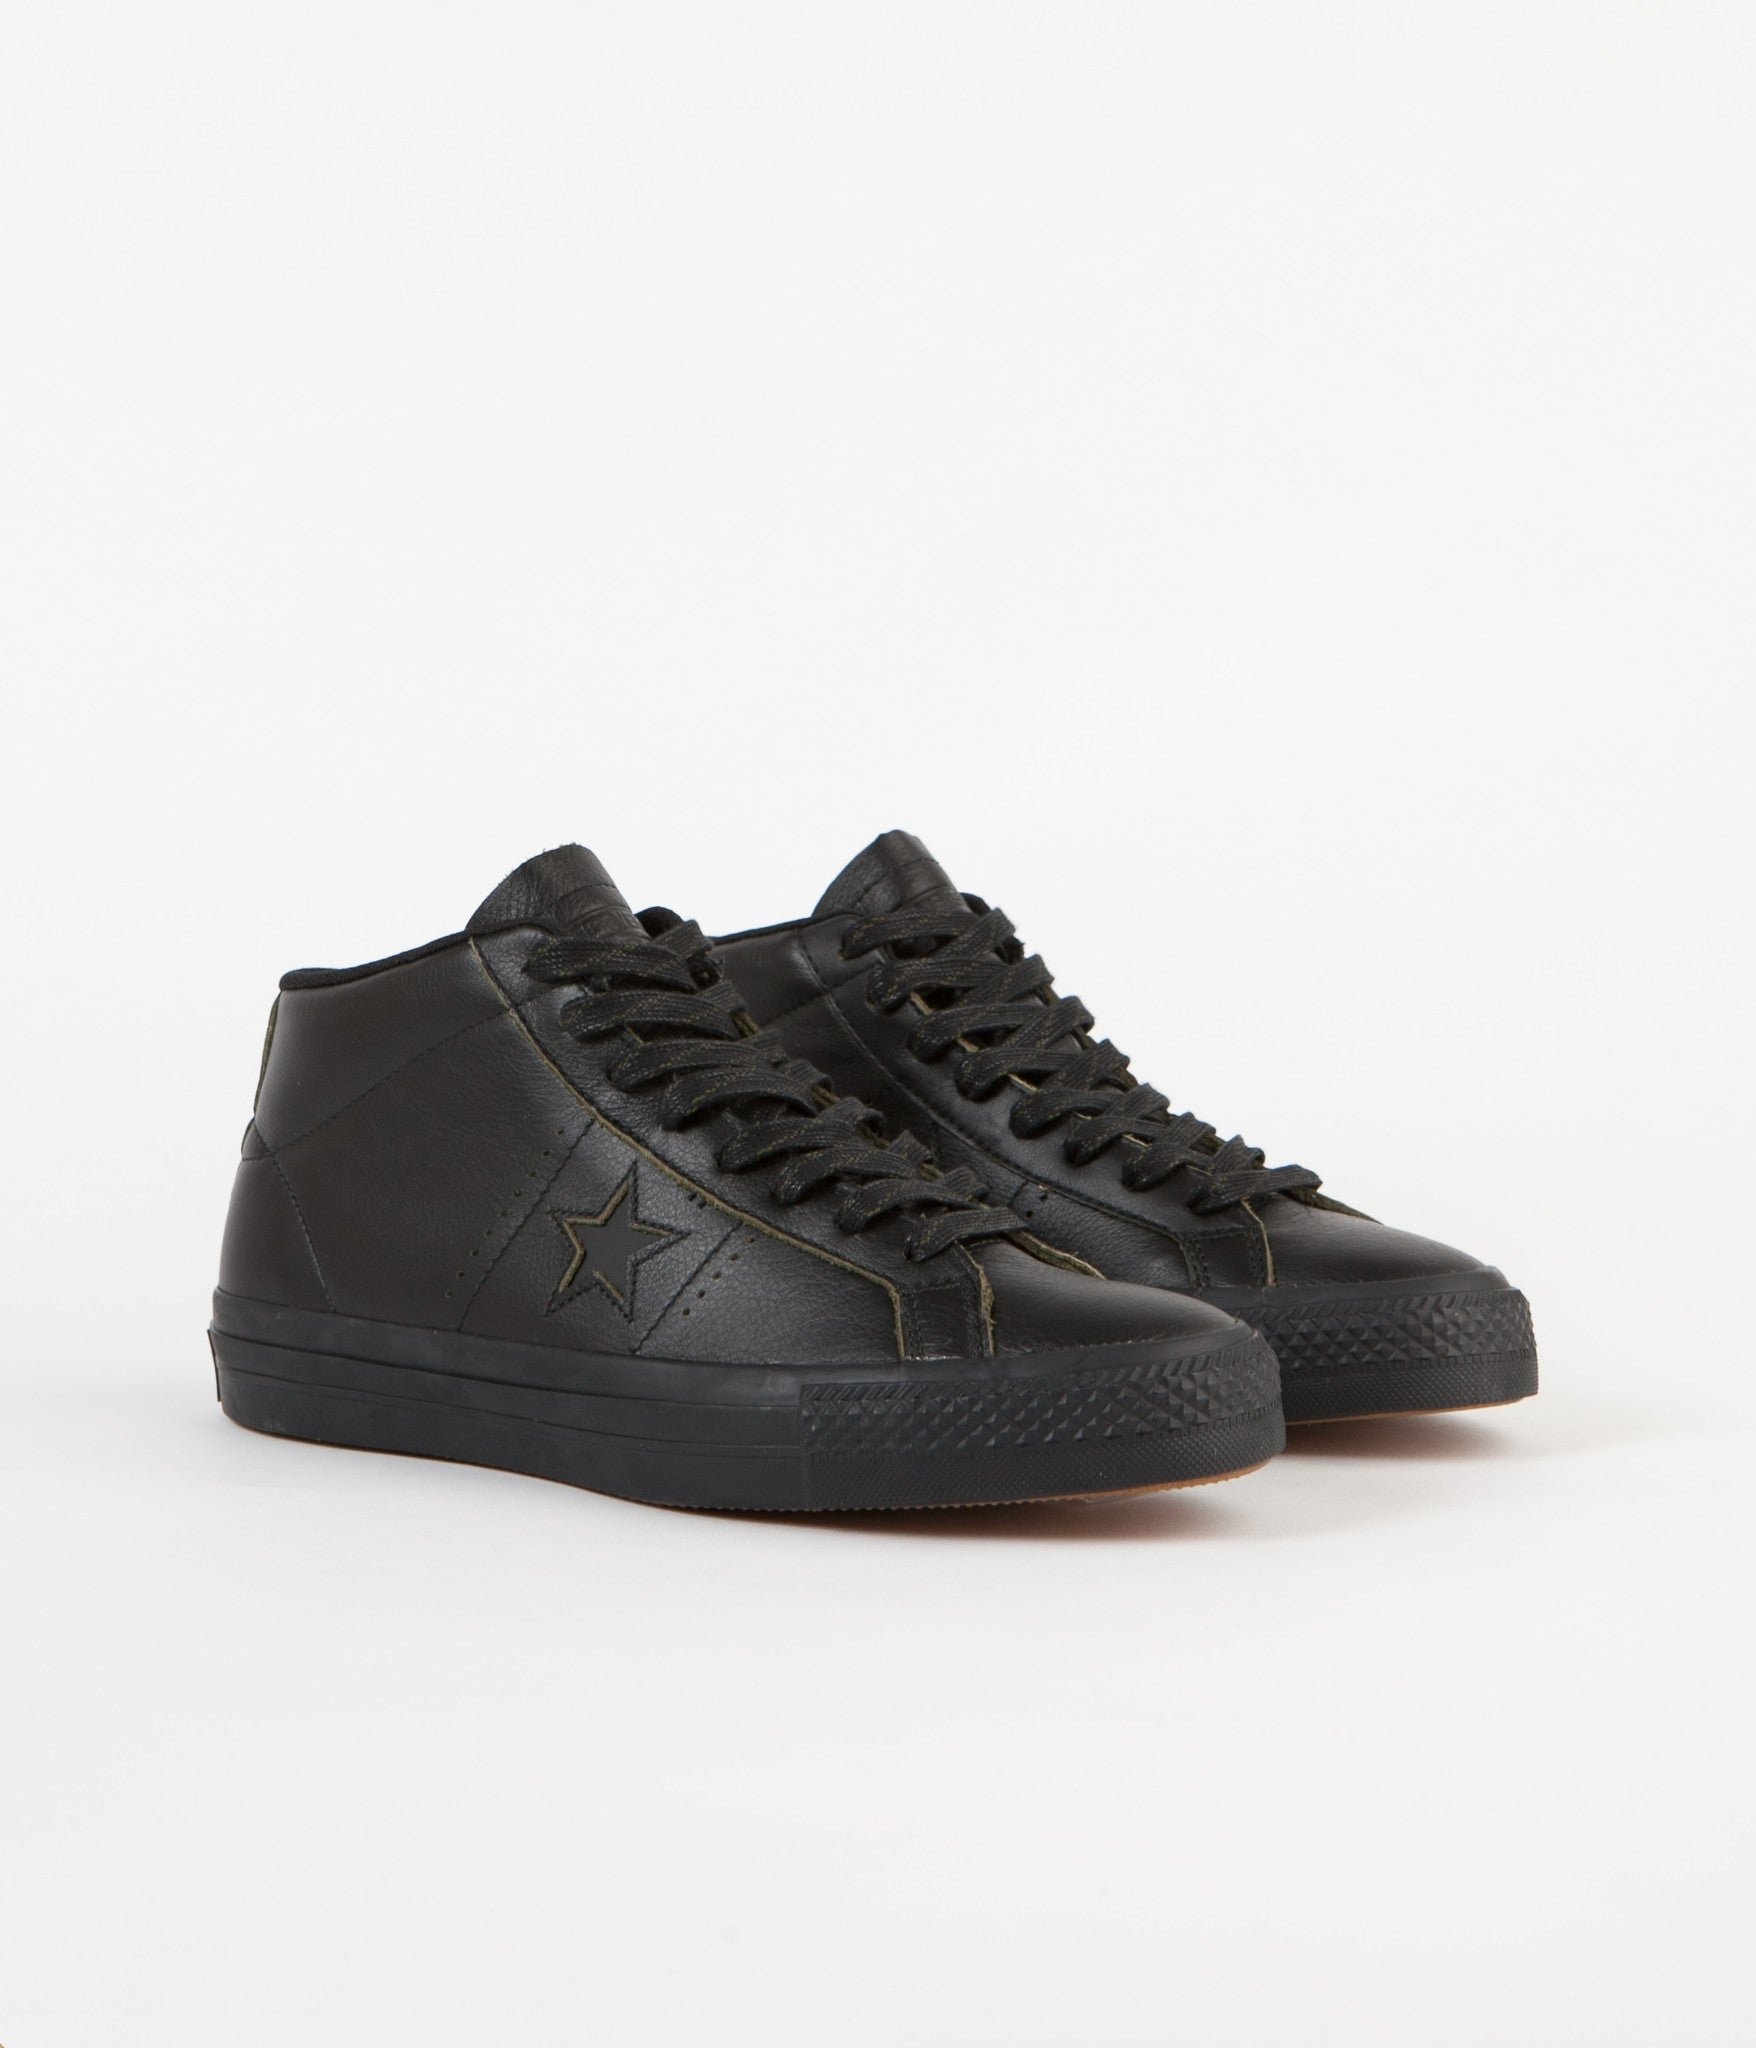 Converse One Star Pro Mid Shoes - Black / Black / Black